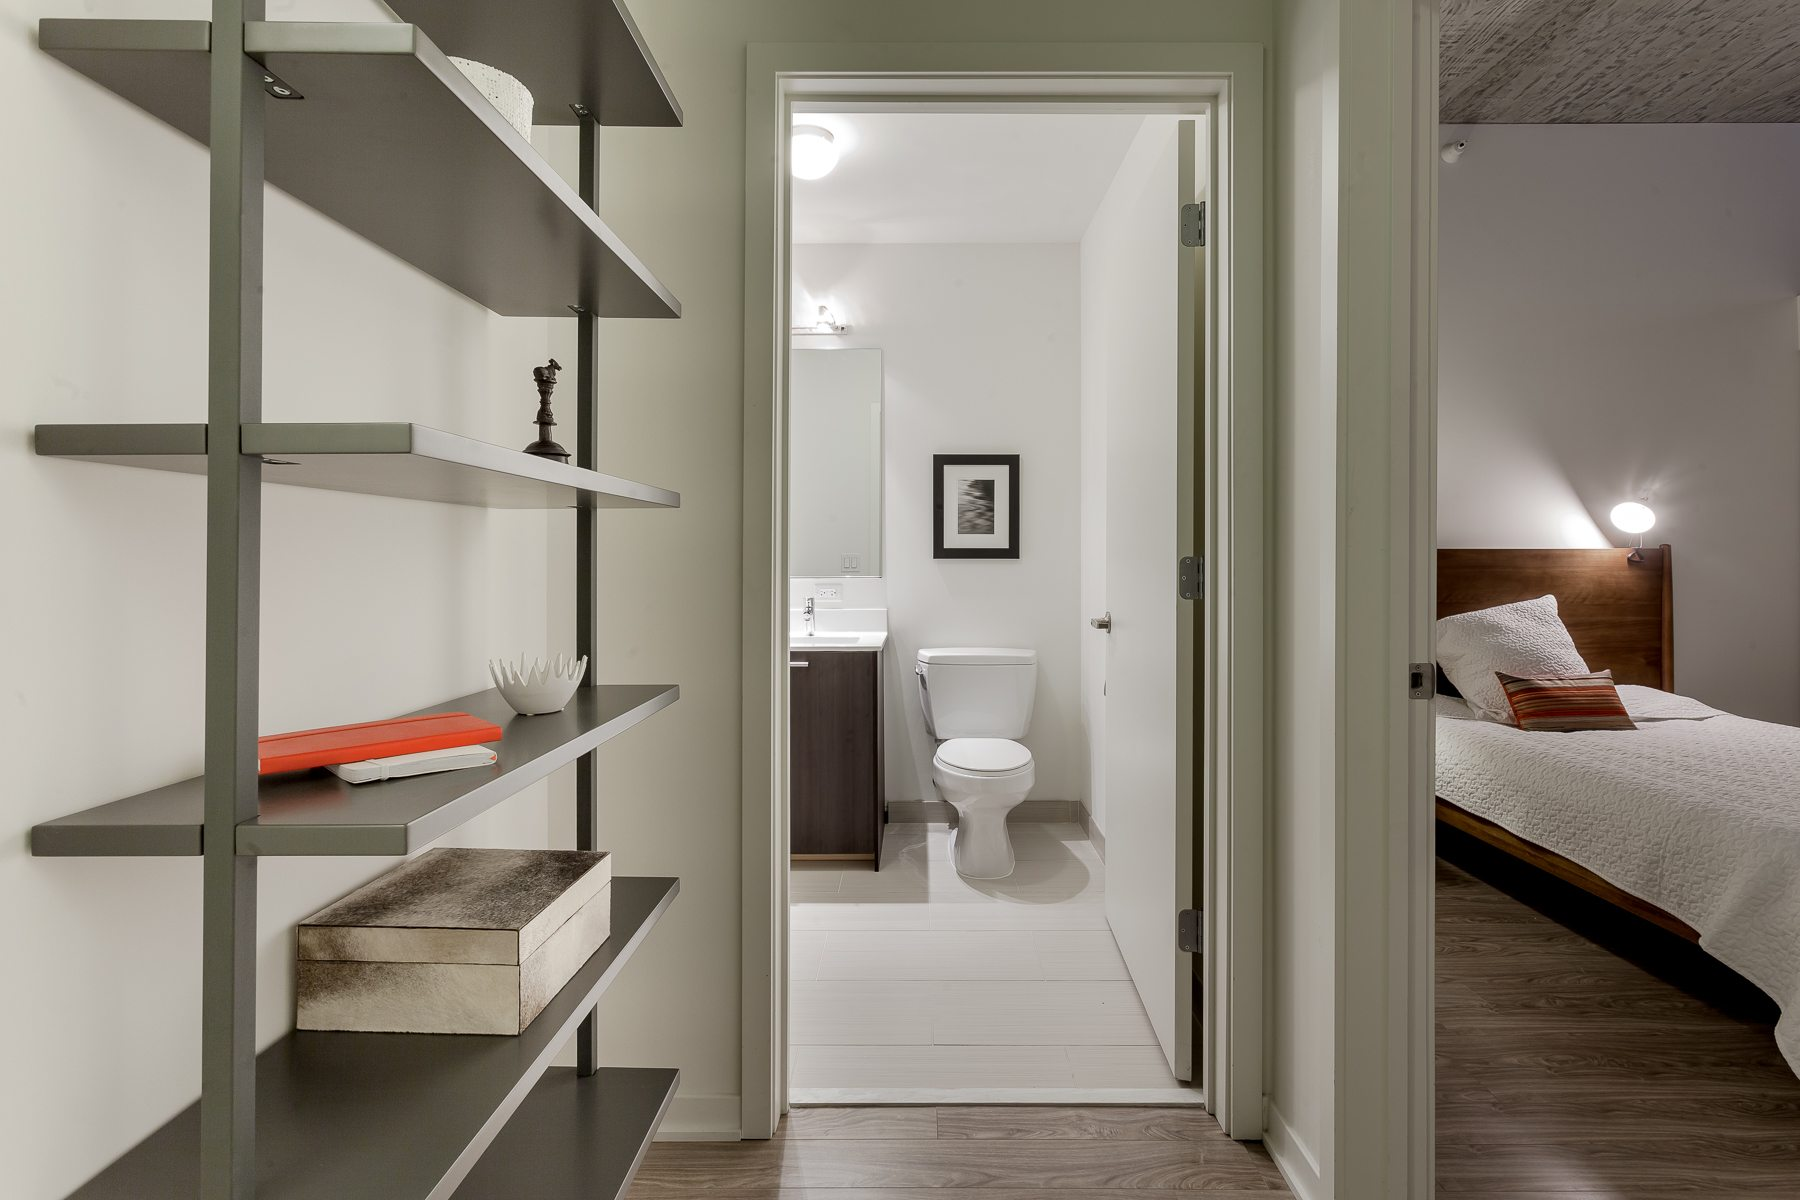 1333-south-wabash-luxury-apartments-south-loop-chicago-il-master-bedroom-shelving